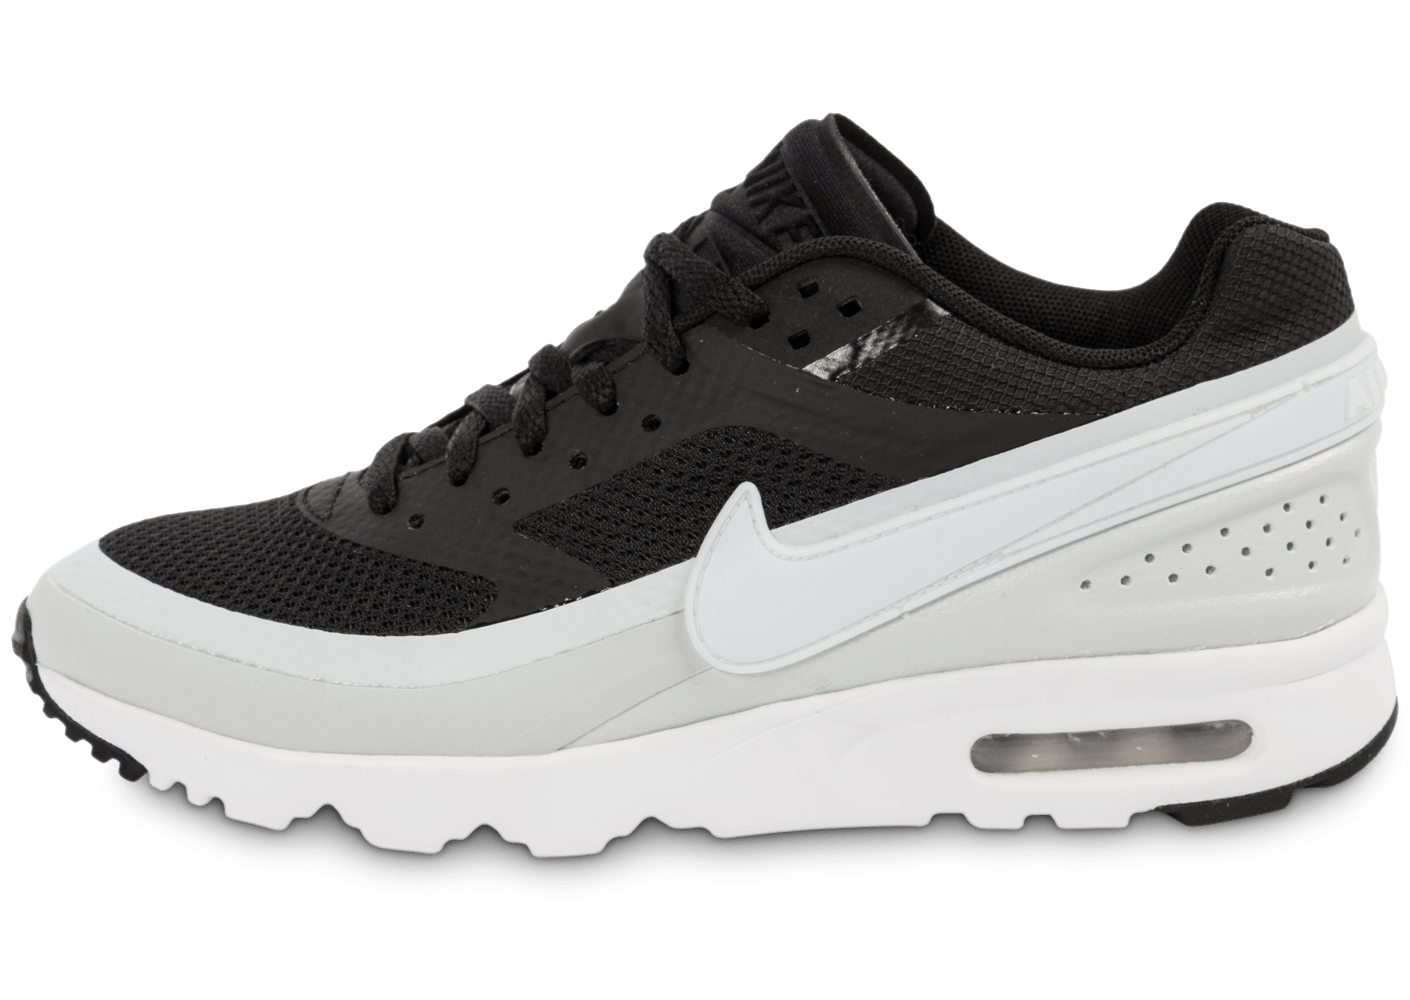 meilleures baskets aba44 aee49 Nike Air Max BW Ultra W black